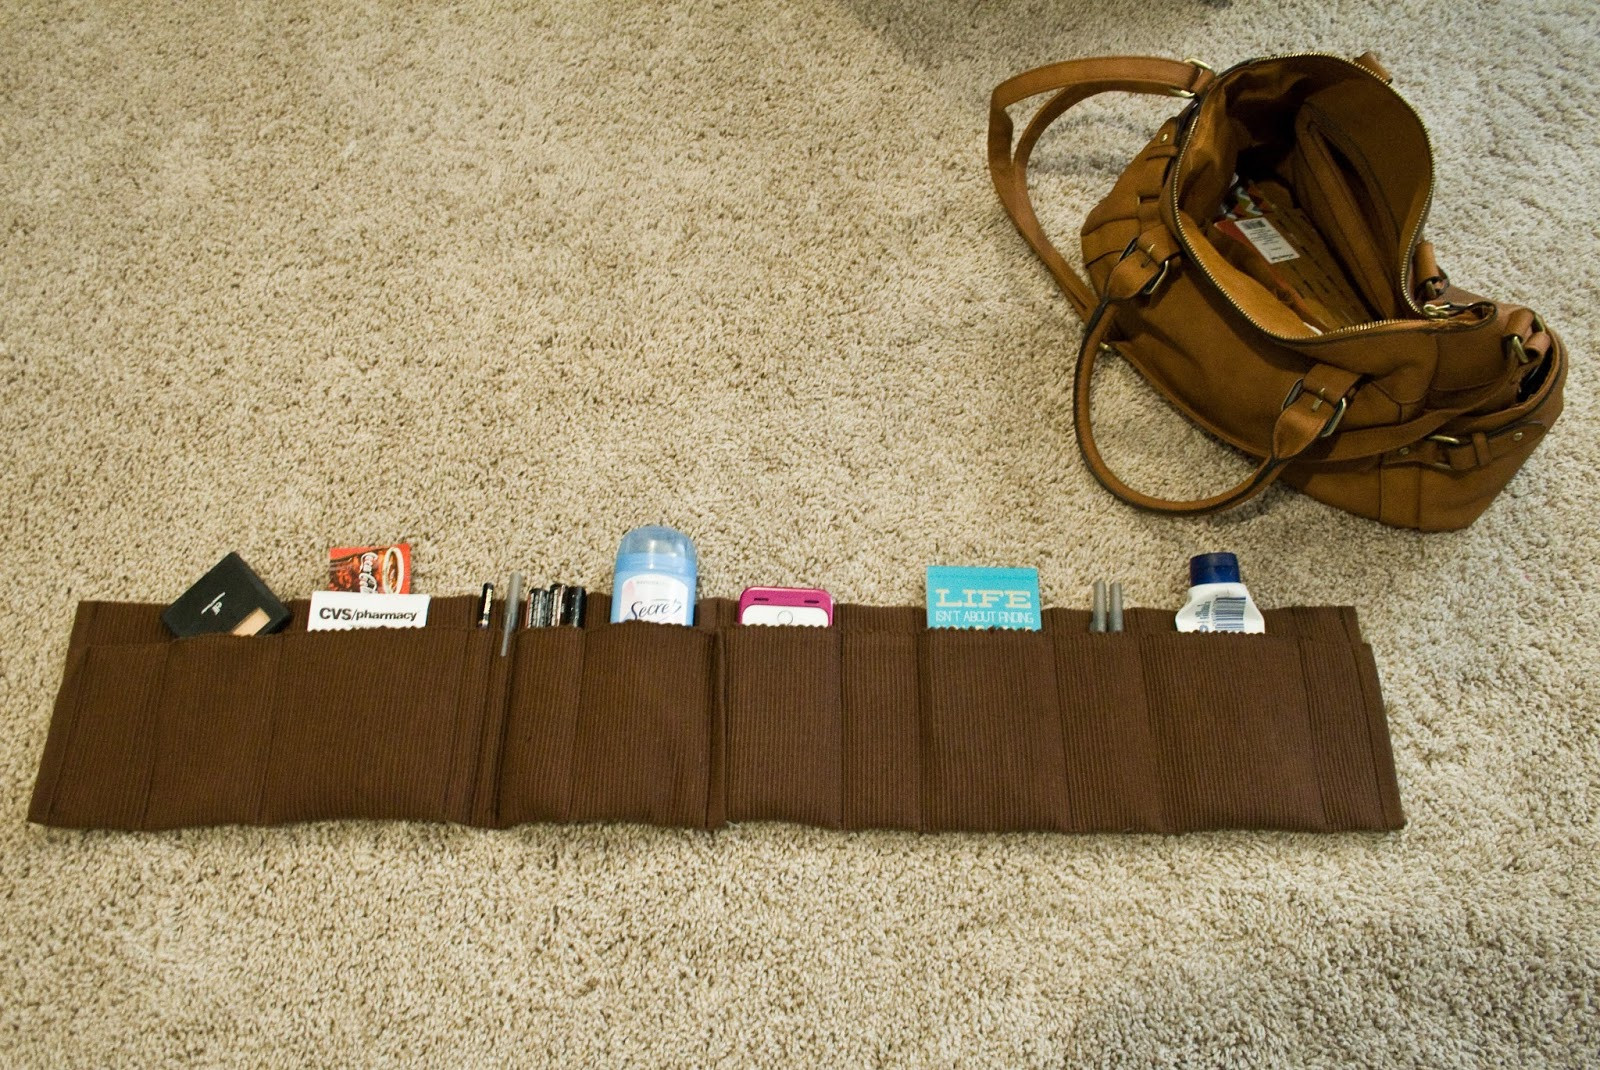 Best ideas about Purse Organizer DIY . Save or Pin five sixteenths blog Make it Monday Easy Purse Now.